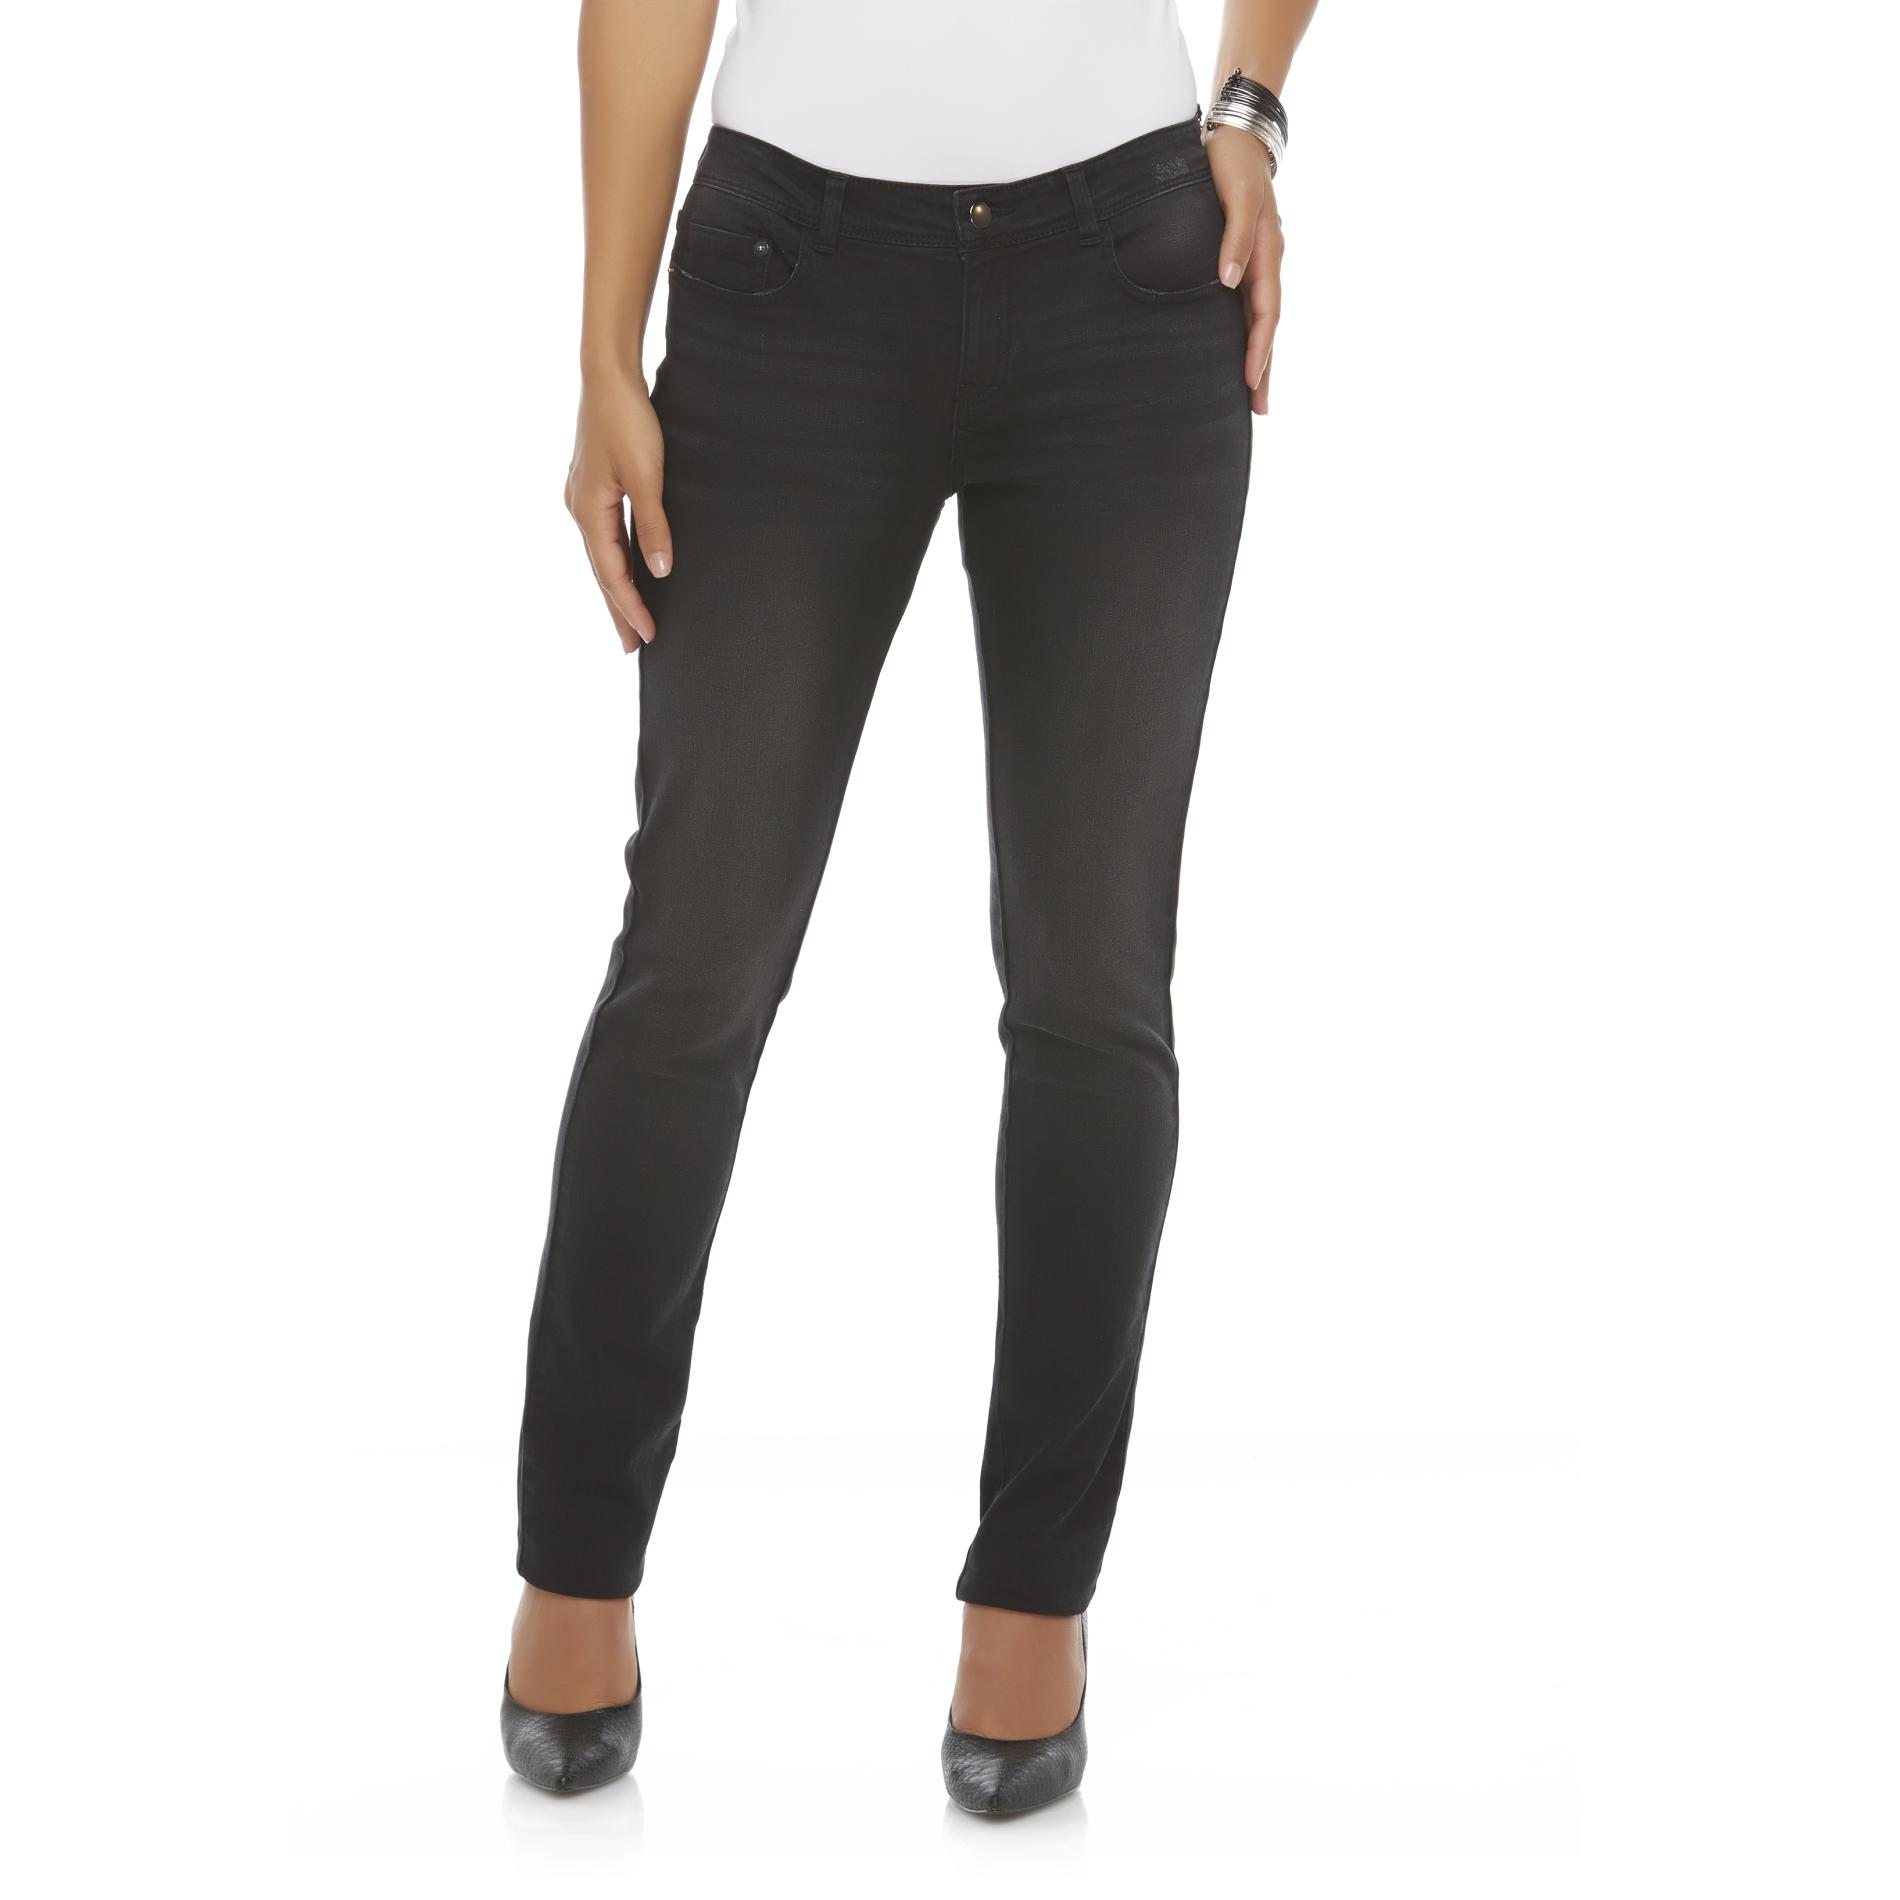 Metaphor Women's Skinny Jeans